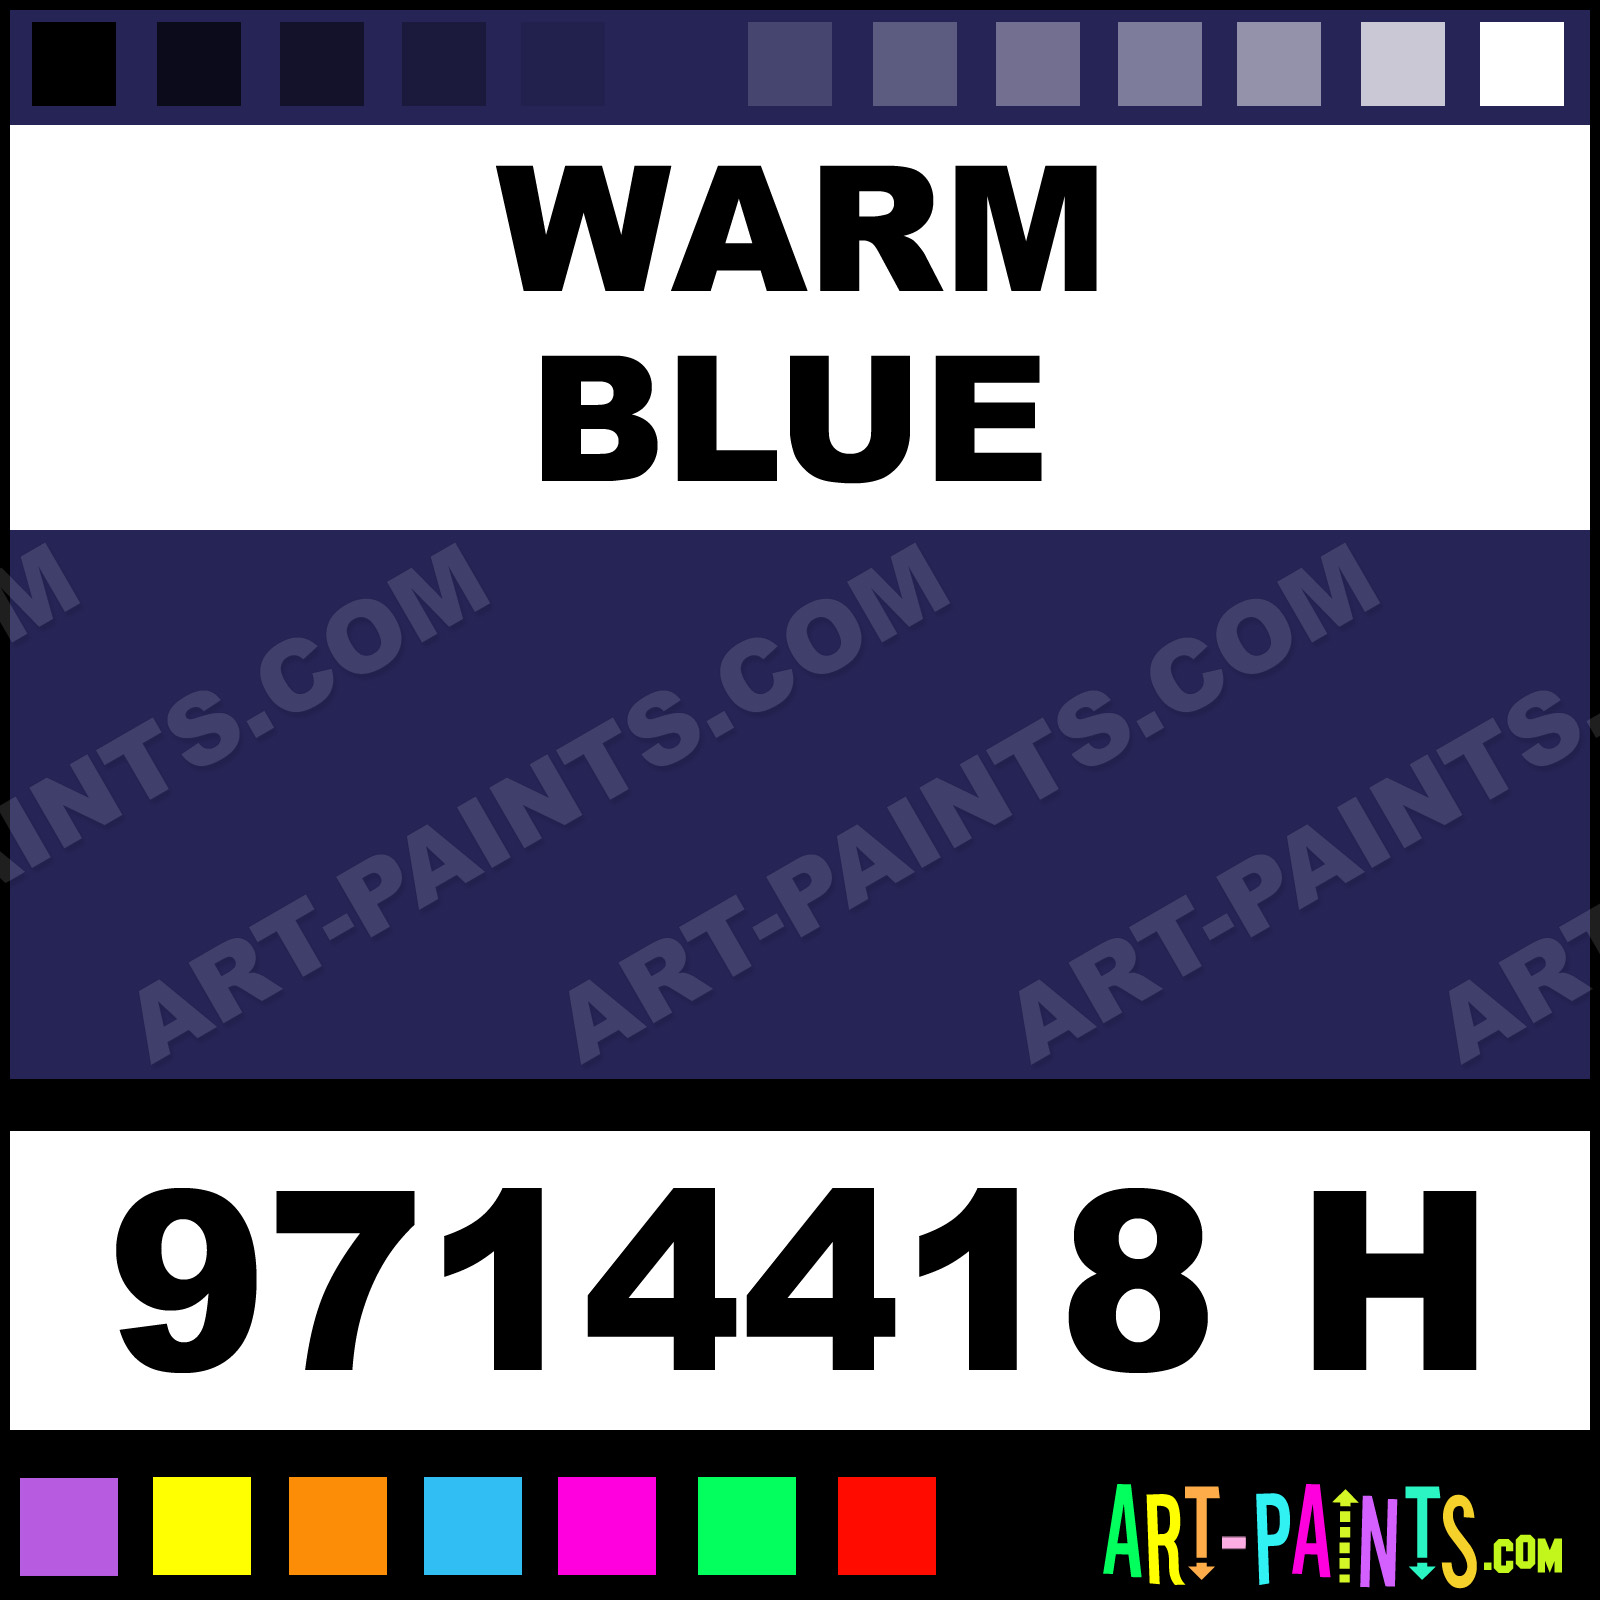 Choosing the paint colour for any direction room angela bunt - Warm Blue School Acrylic Paints 9714418 H Warm Blue Paint